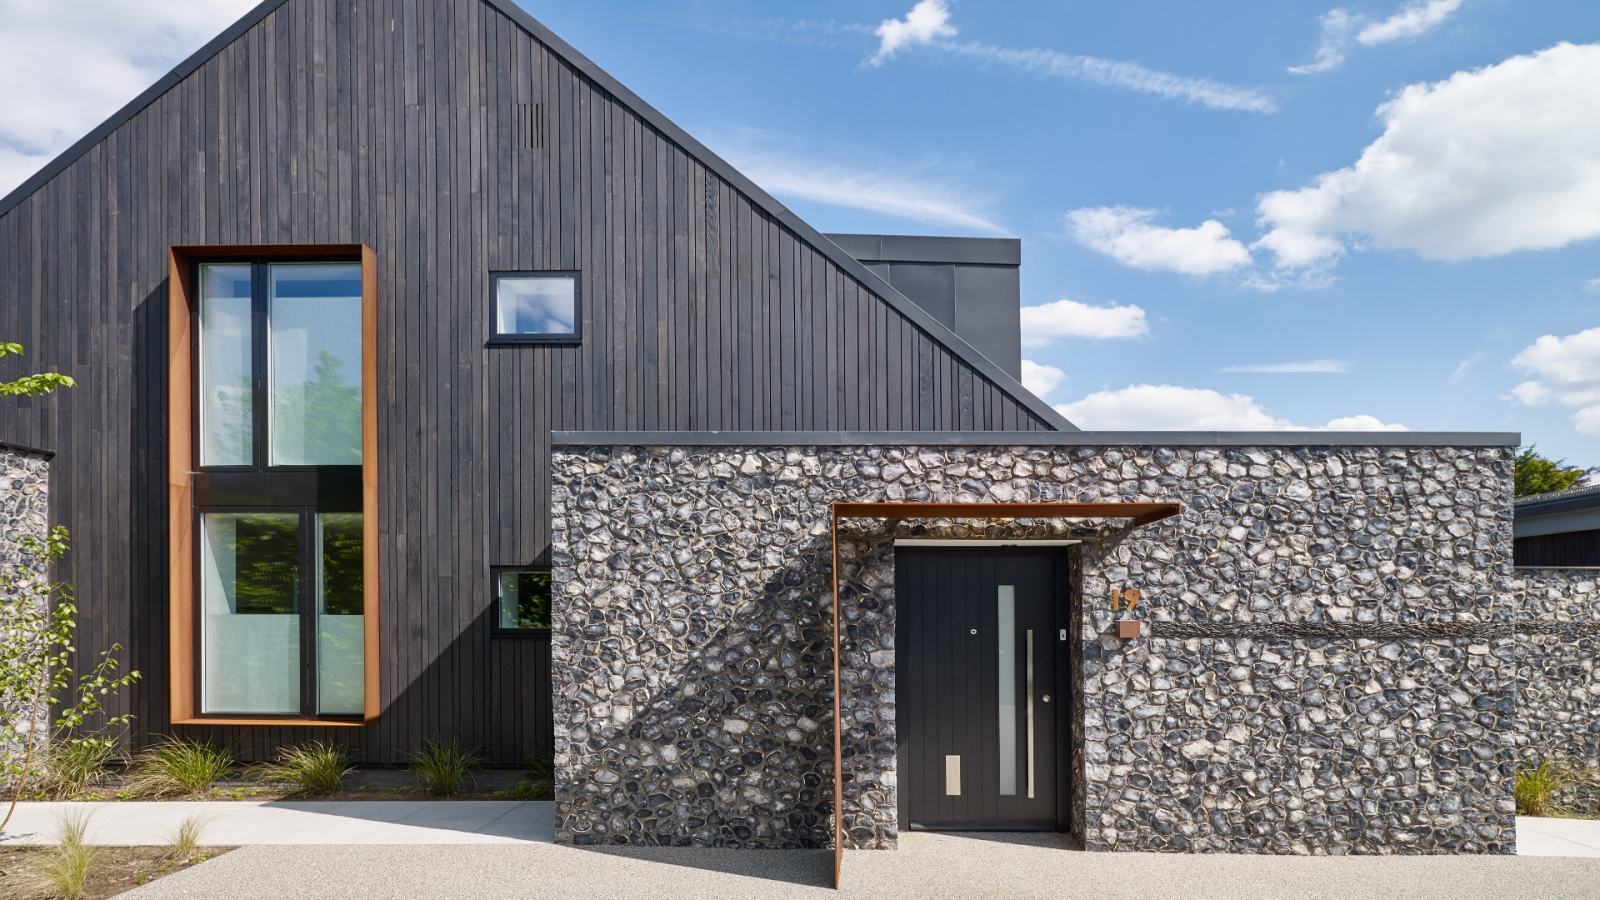 House 19 Grand Designs Feature 21st September 2016